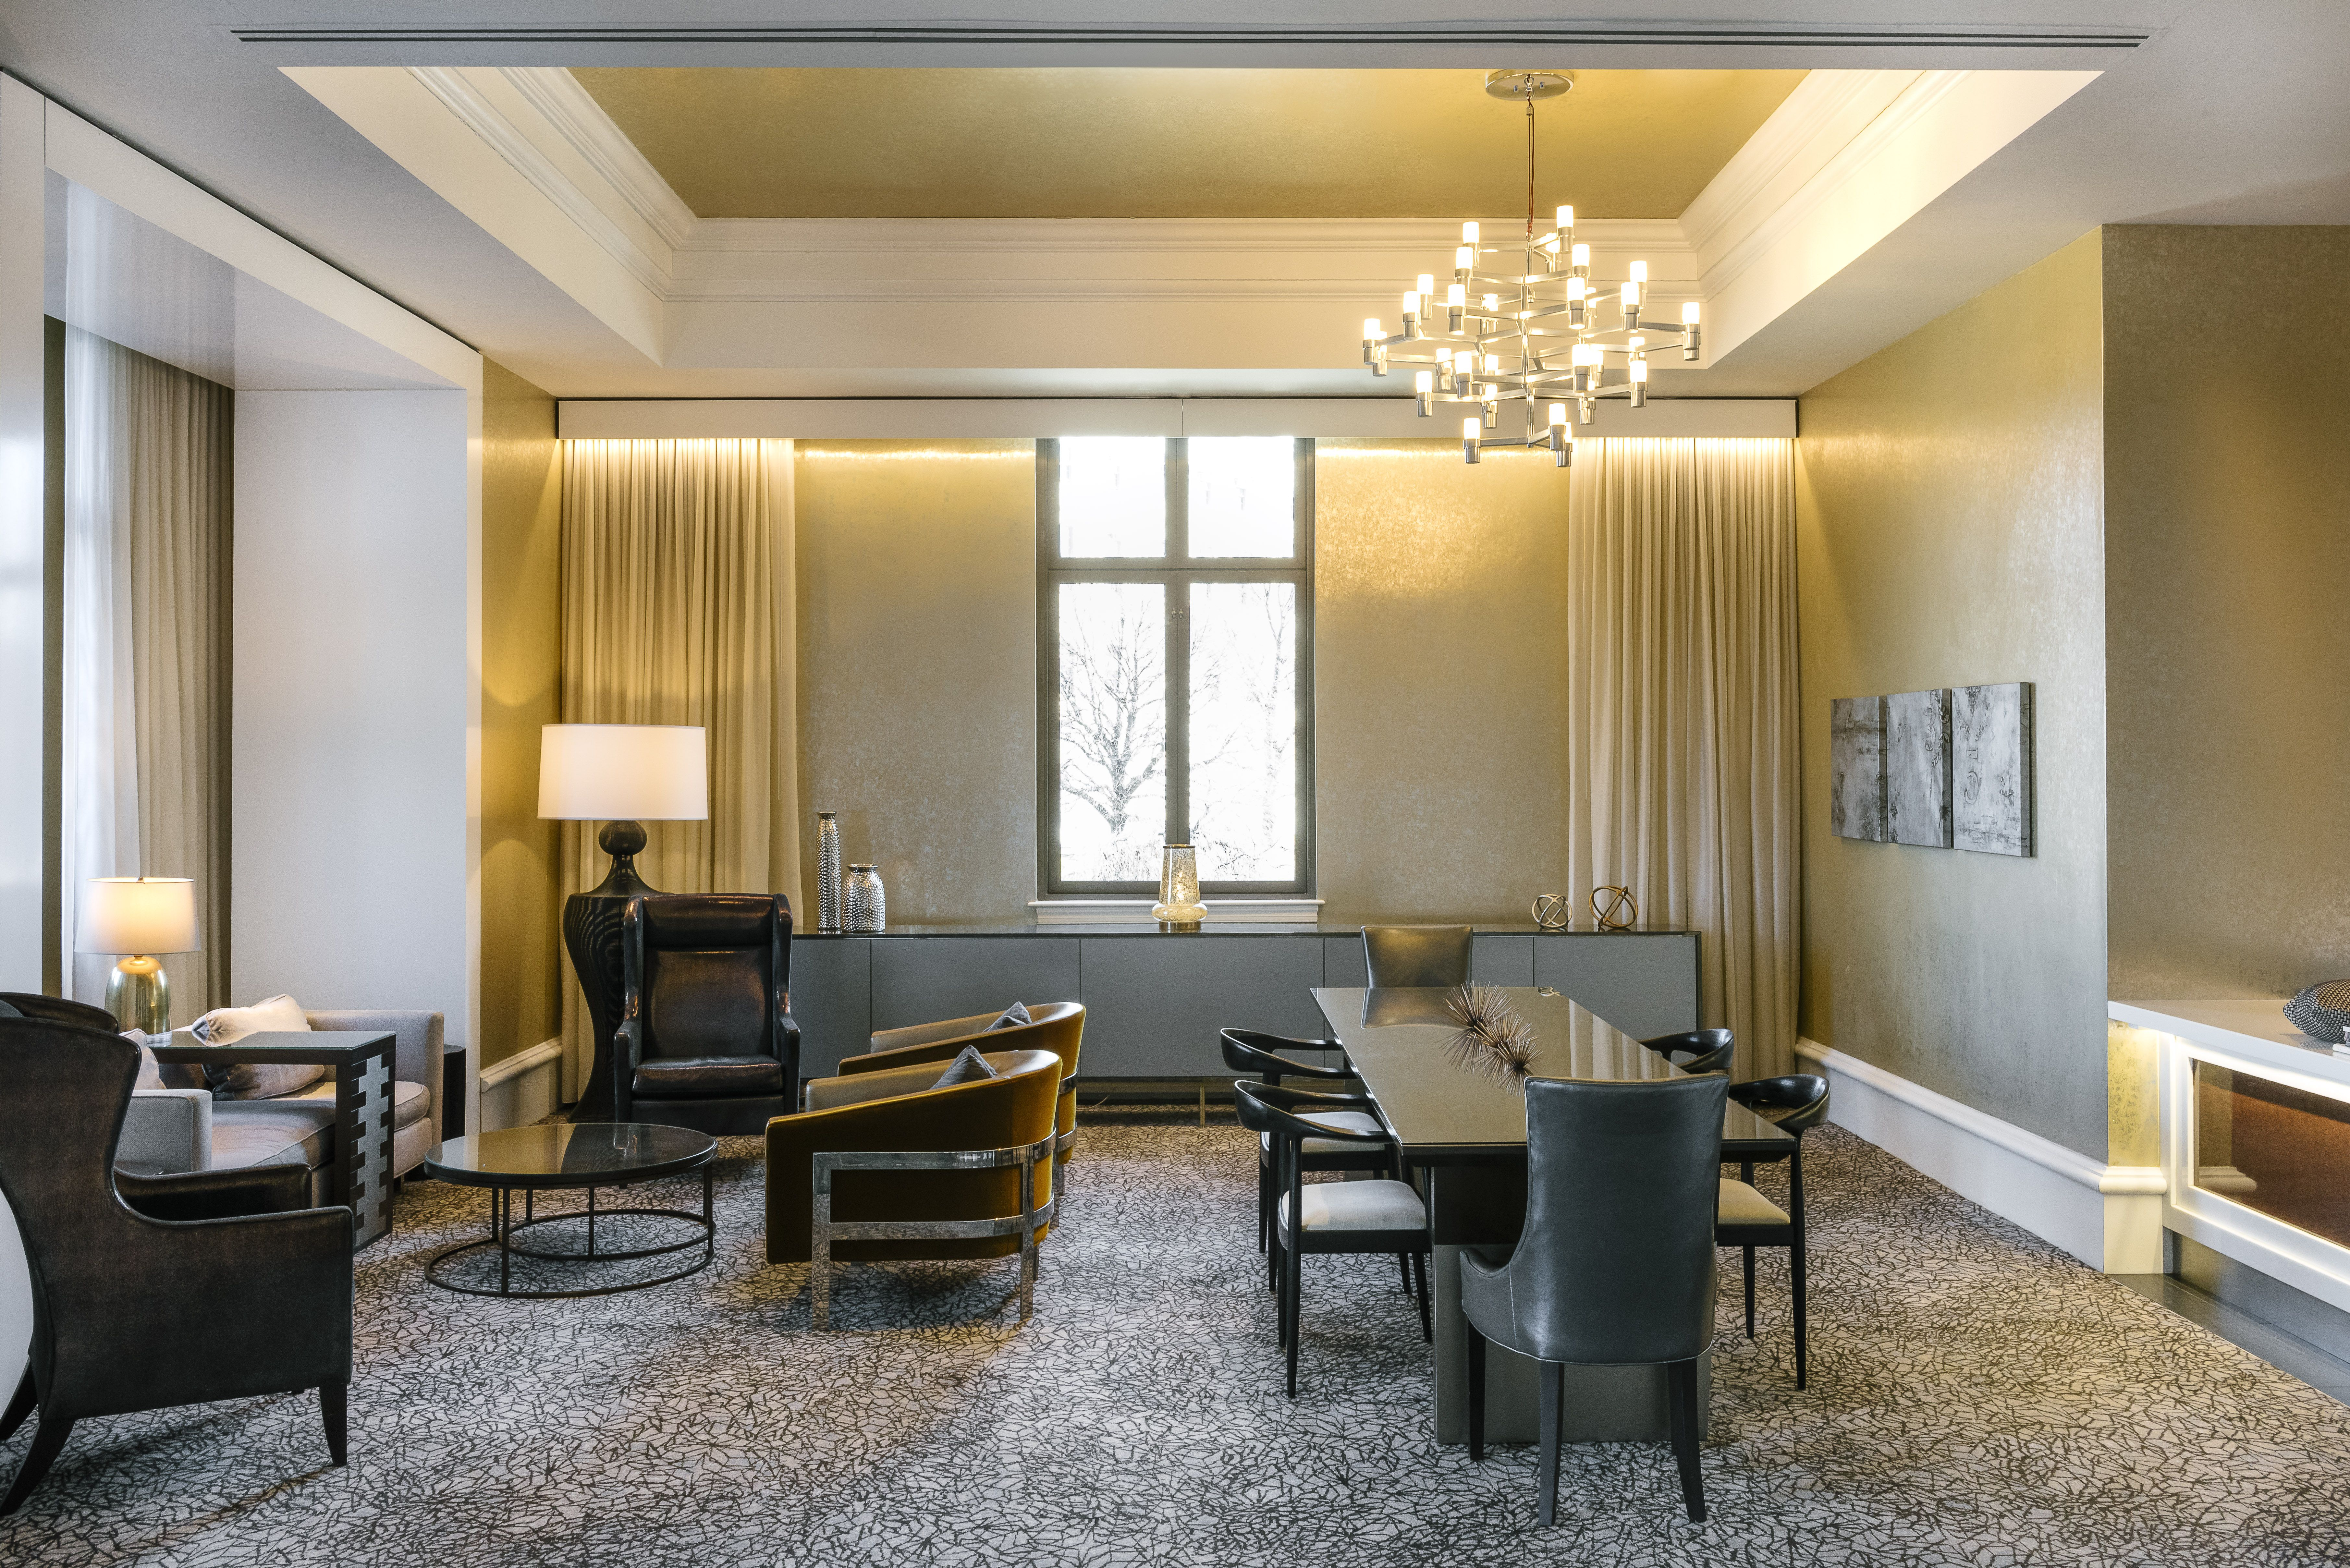 Renaissance Providence designed by New York based Boutique Interior